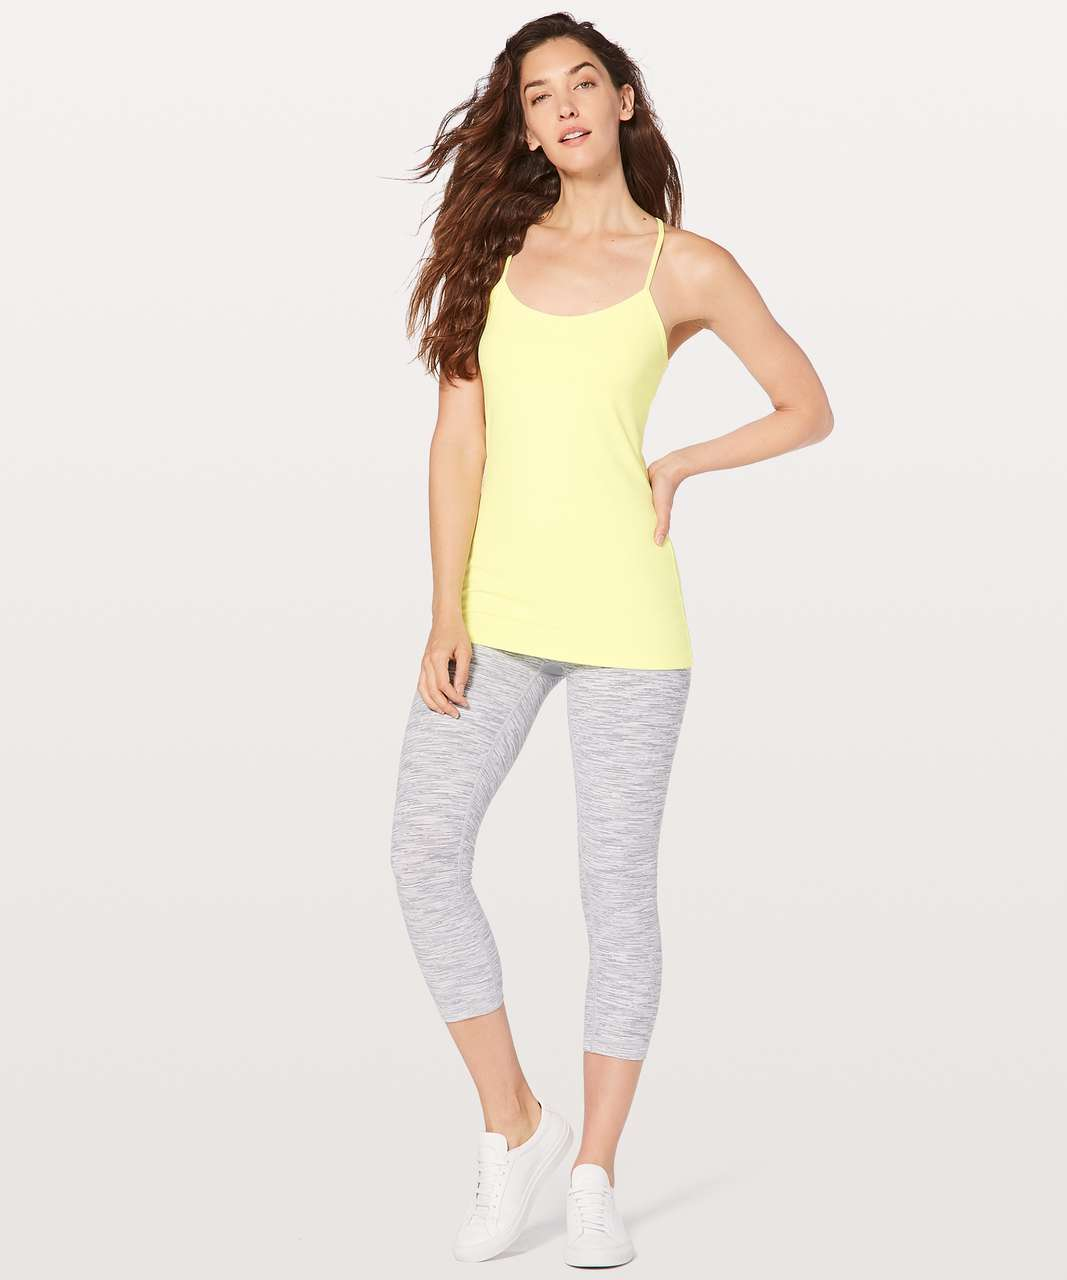 Lululemon Power Pose Tank Light Support For A/B Cup - Sheer Lemon